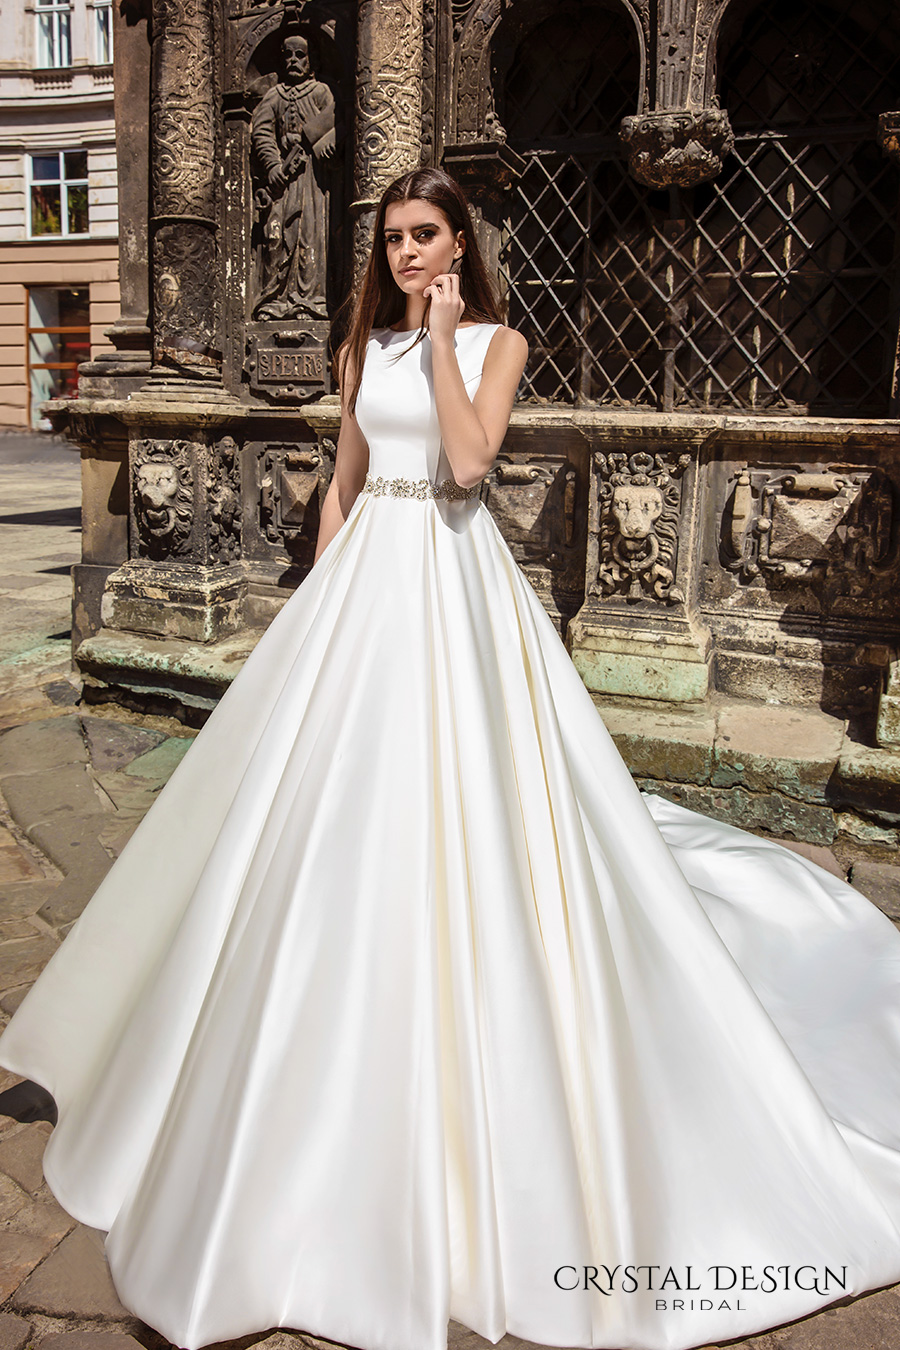 crystal design bridal 2016 sleeveless boat neckline modern simple embellished belt elegant a line wedding dress illusion back long train (valencia) mv